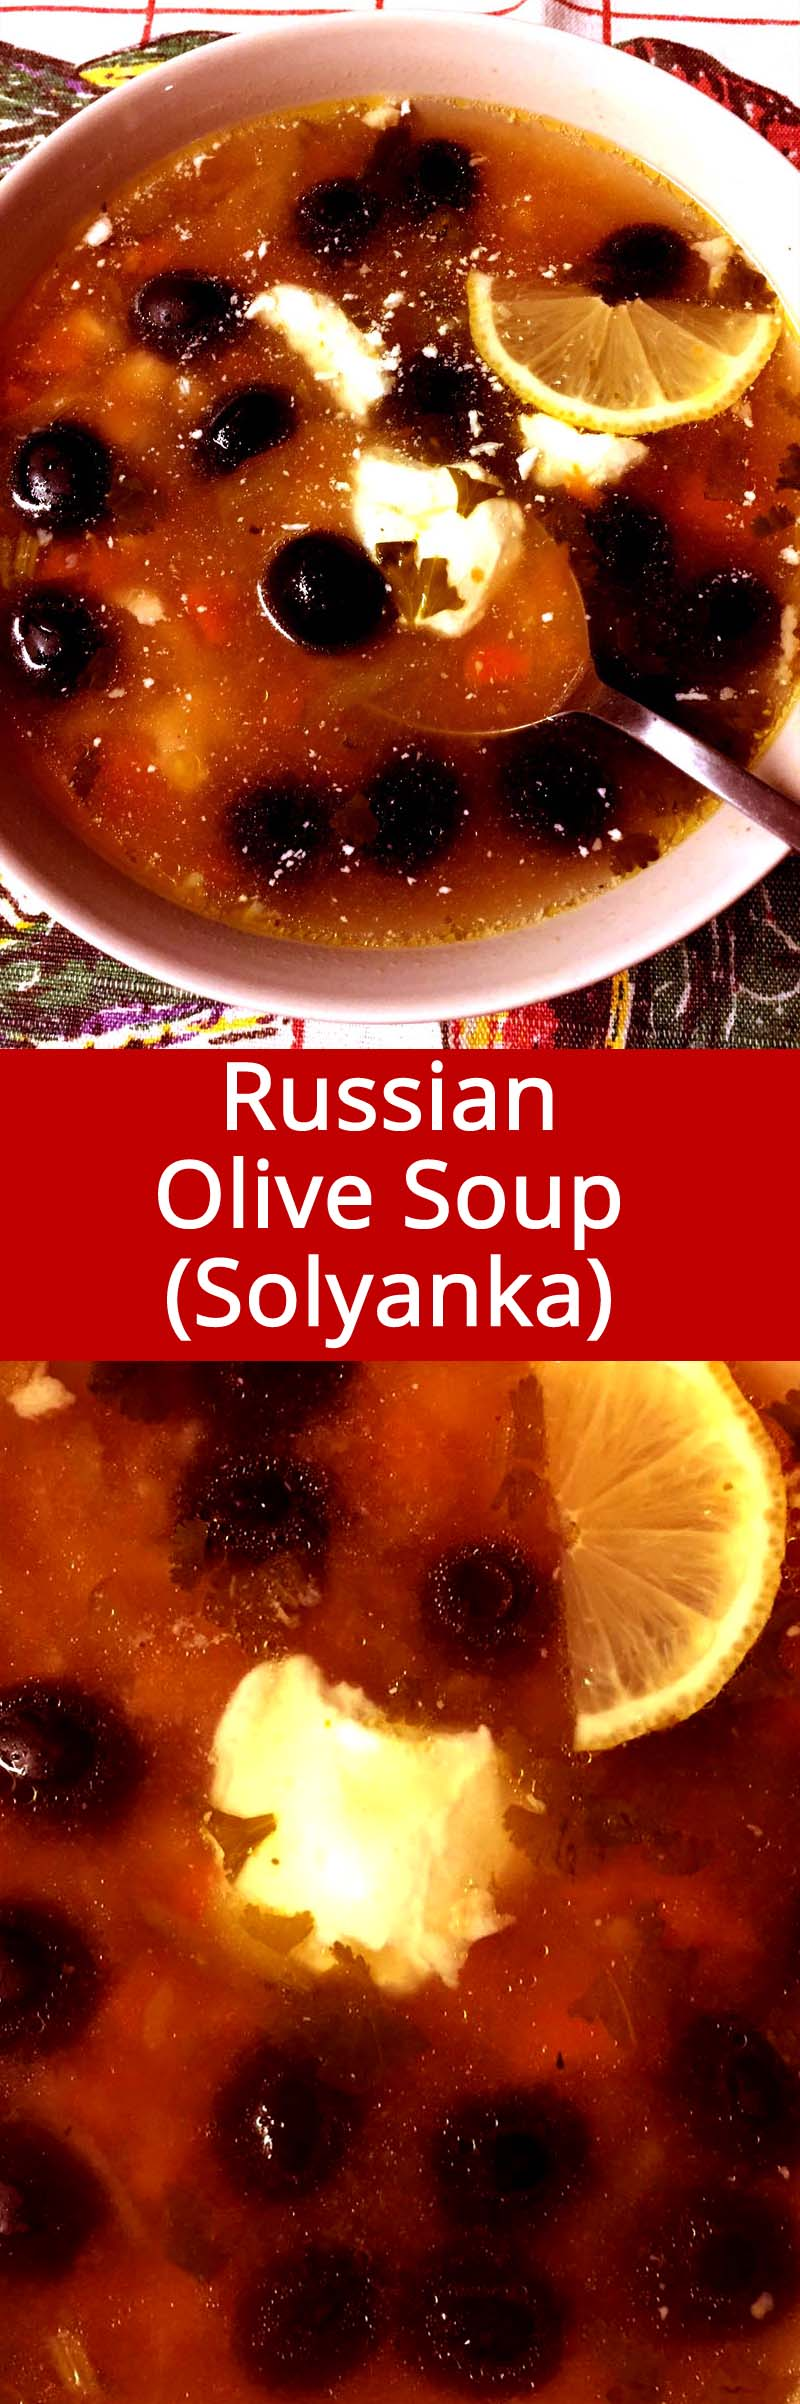 This is an authentic Russian recipe for Russian Olive Soup (called